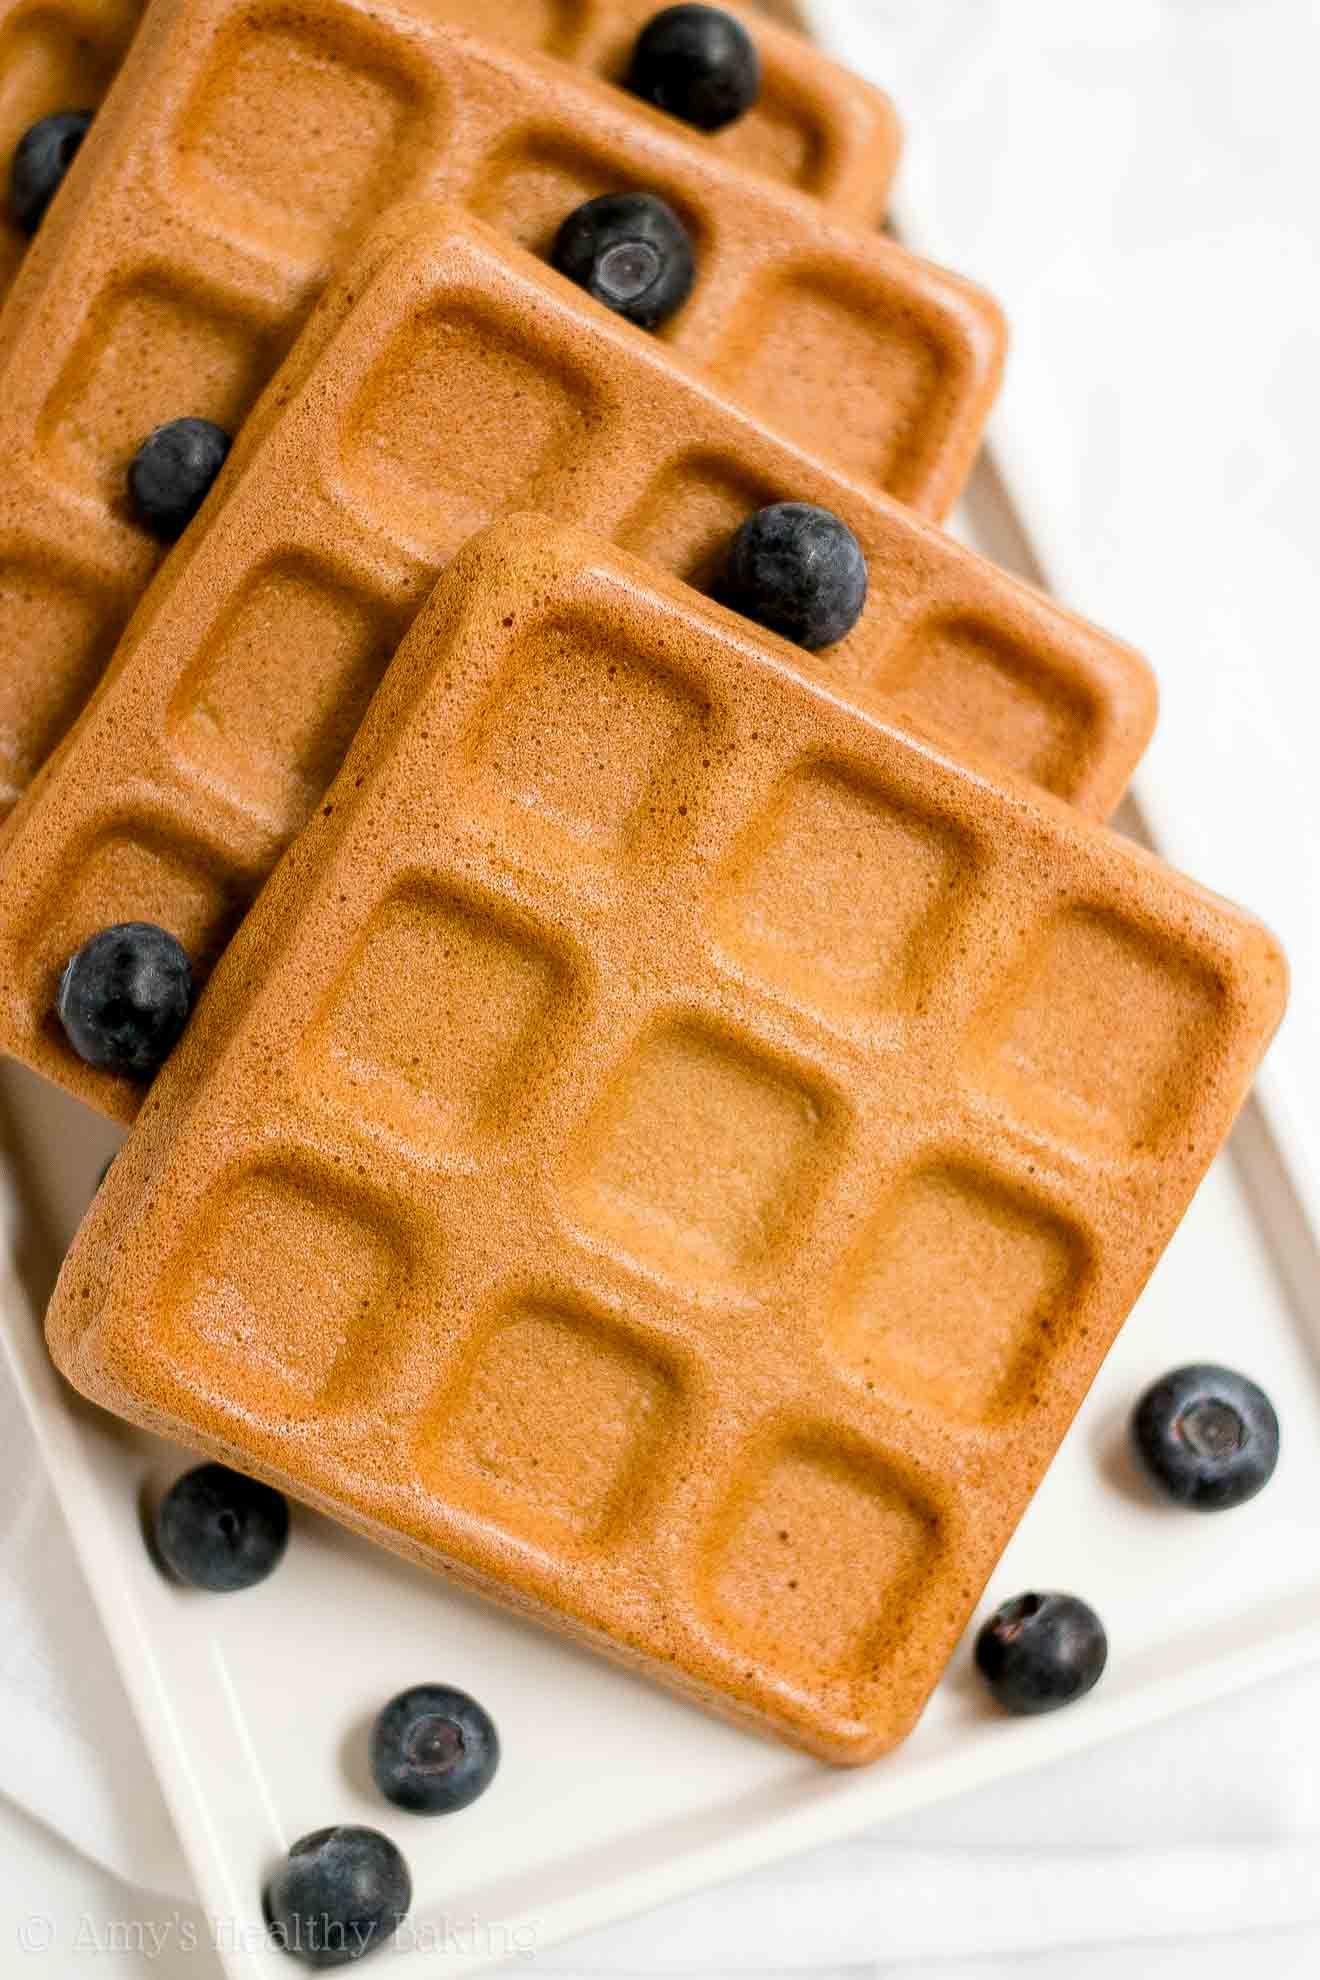 The Best Healthy Buttermilk Waffles Only 102 Calories They Re Truly Perfect Light Fluffy Crispy On The Outside And Baked In Low Calorie Oatmeal Cookie